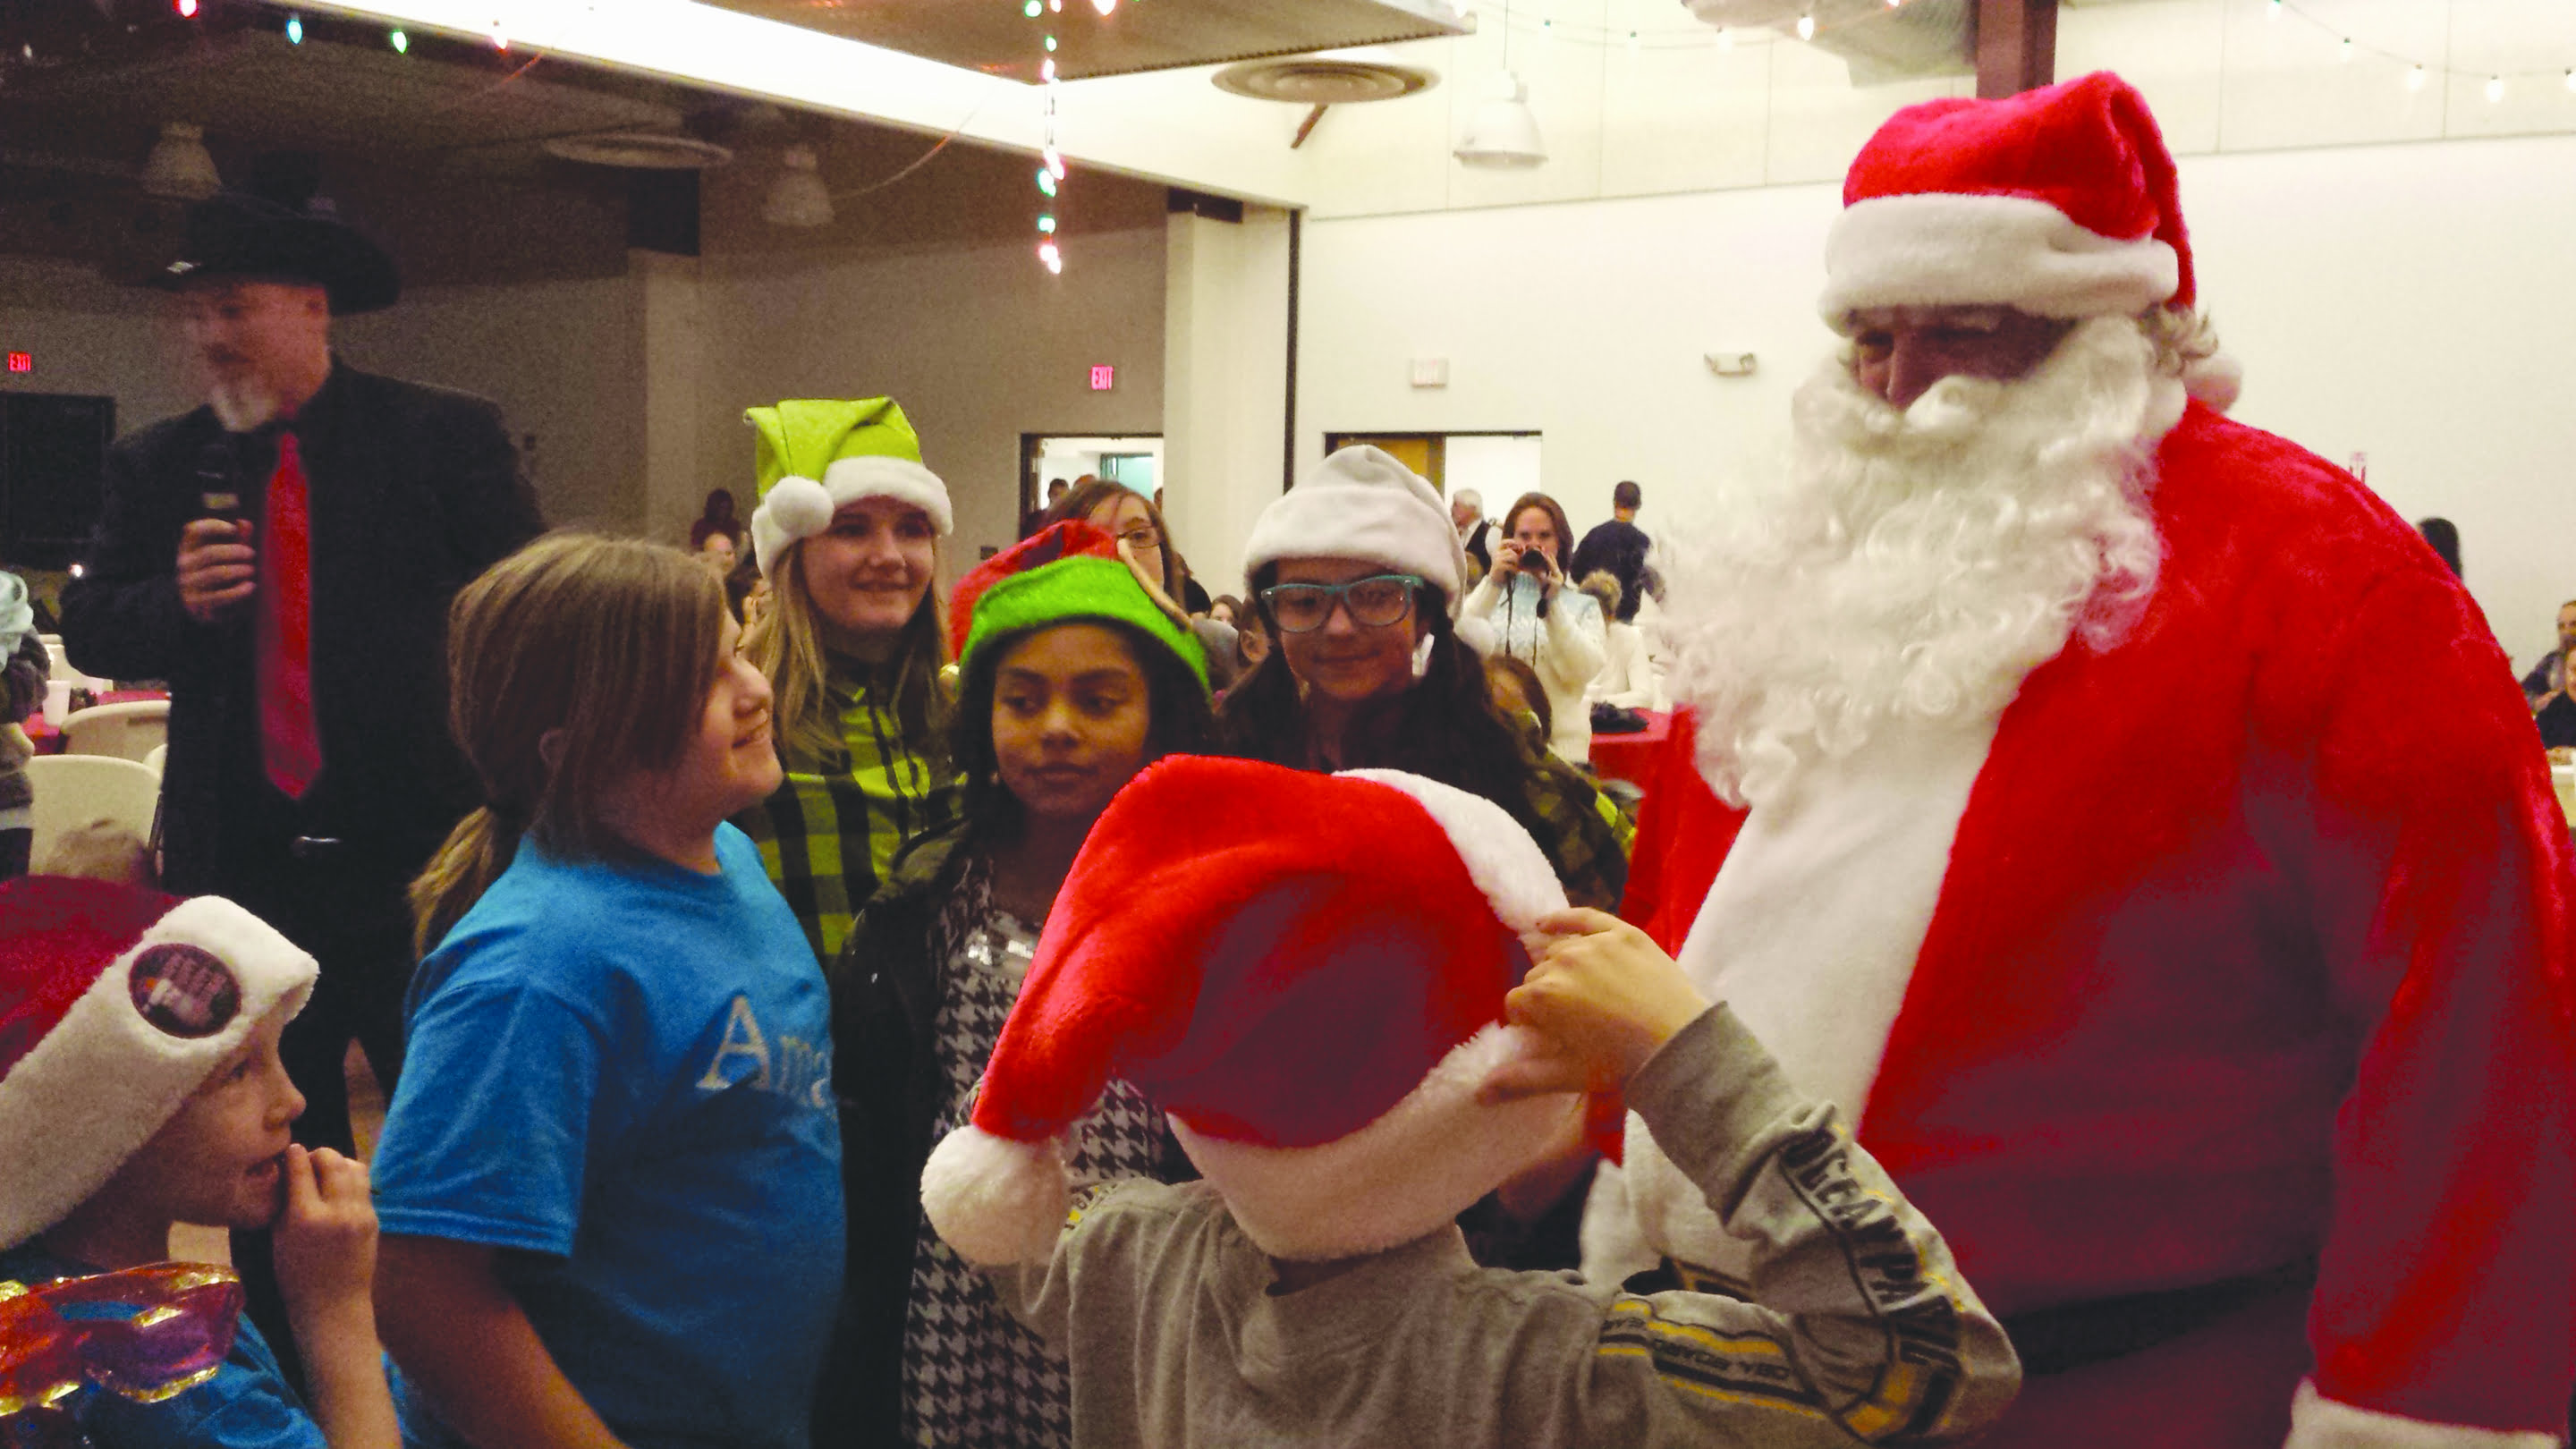 Third Annual Starlit Night & Bethel Express rolls into town